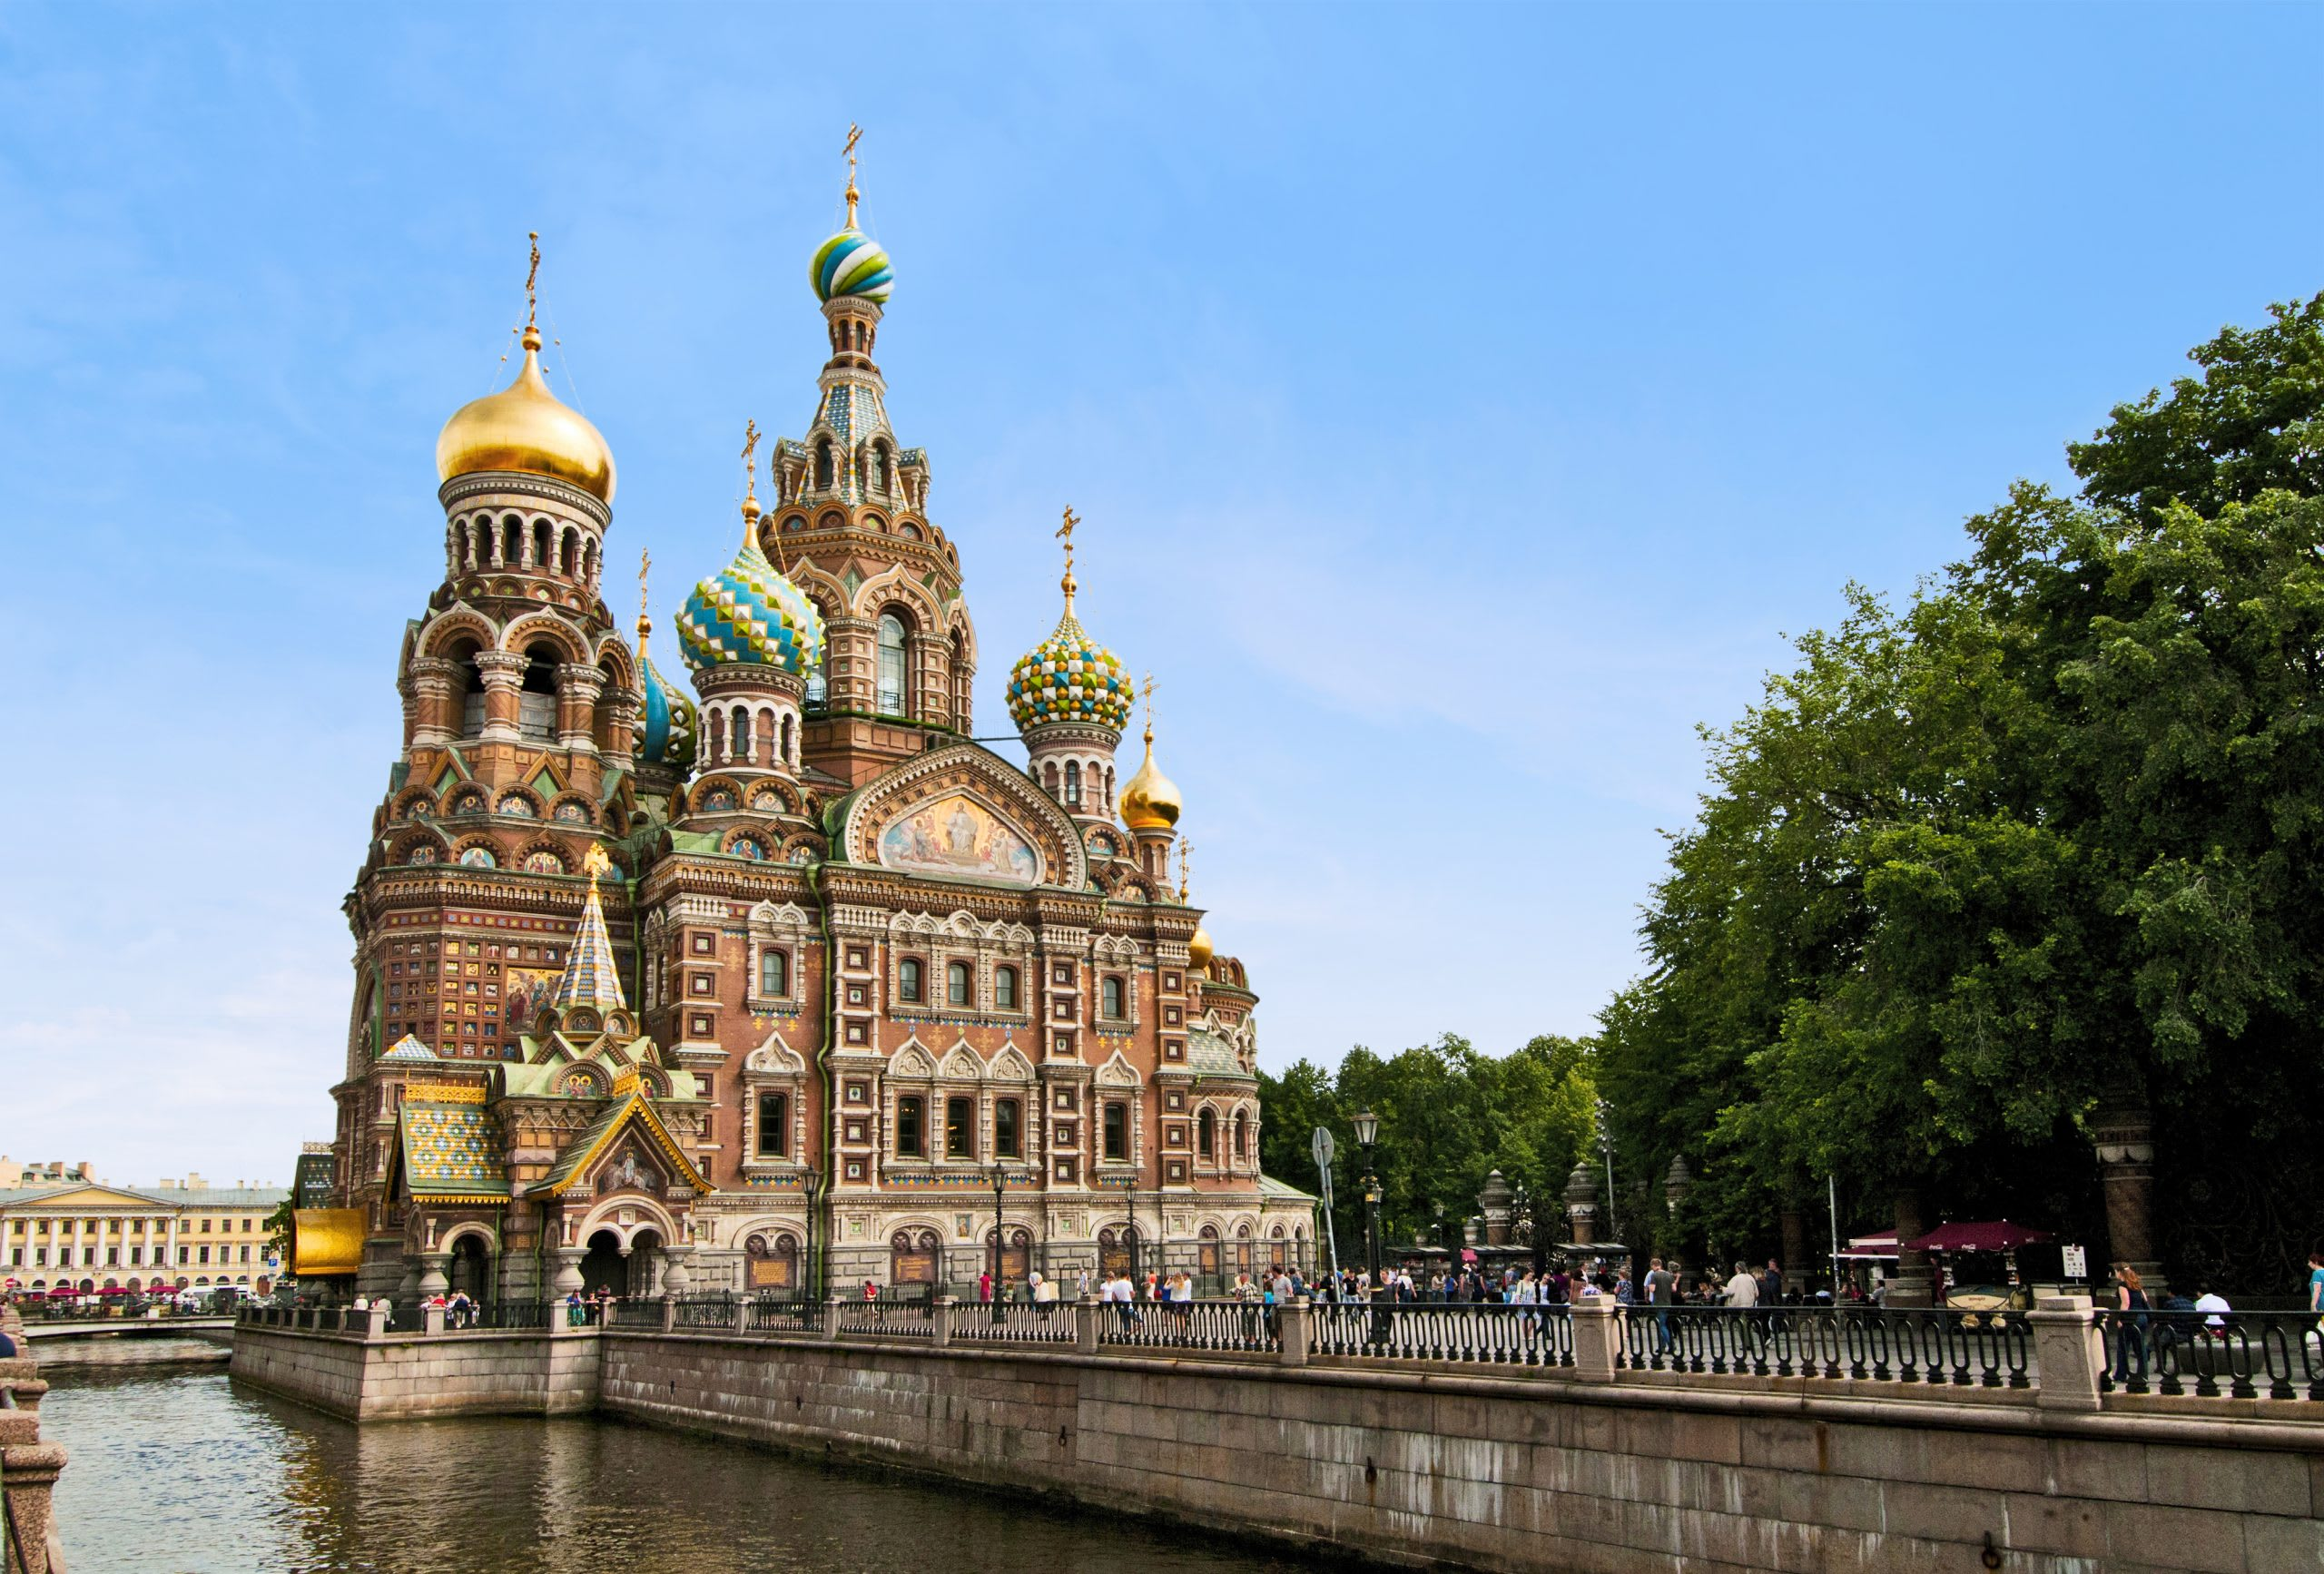 St. Petersburg - Church of our Saviour on Spilled Blood